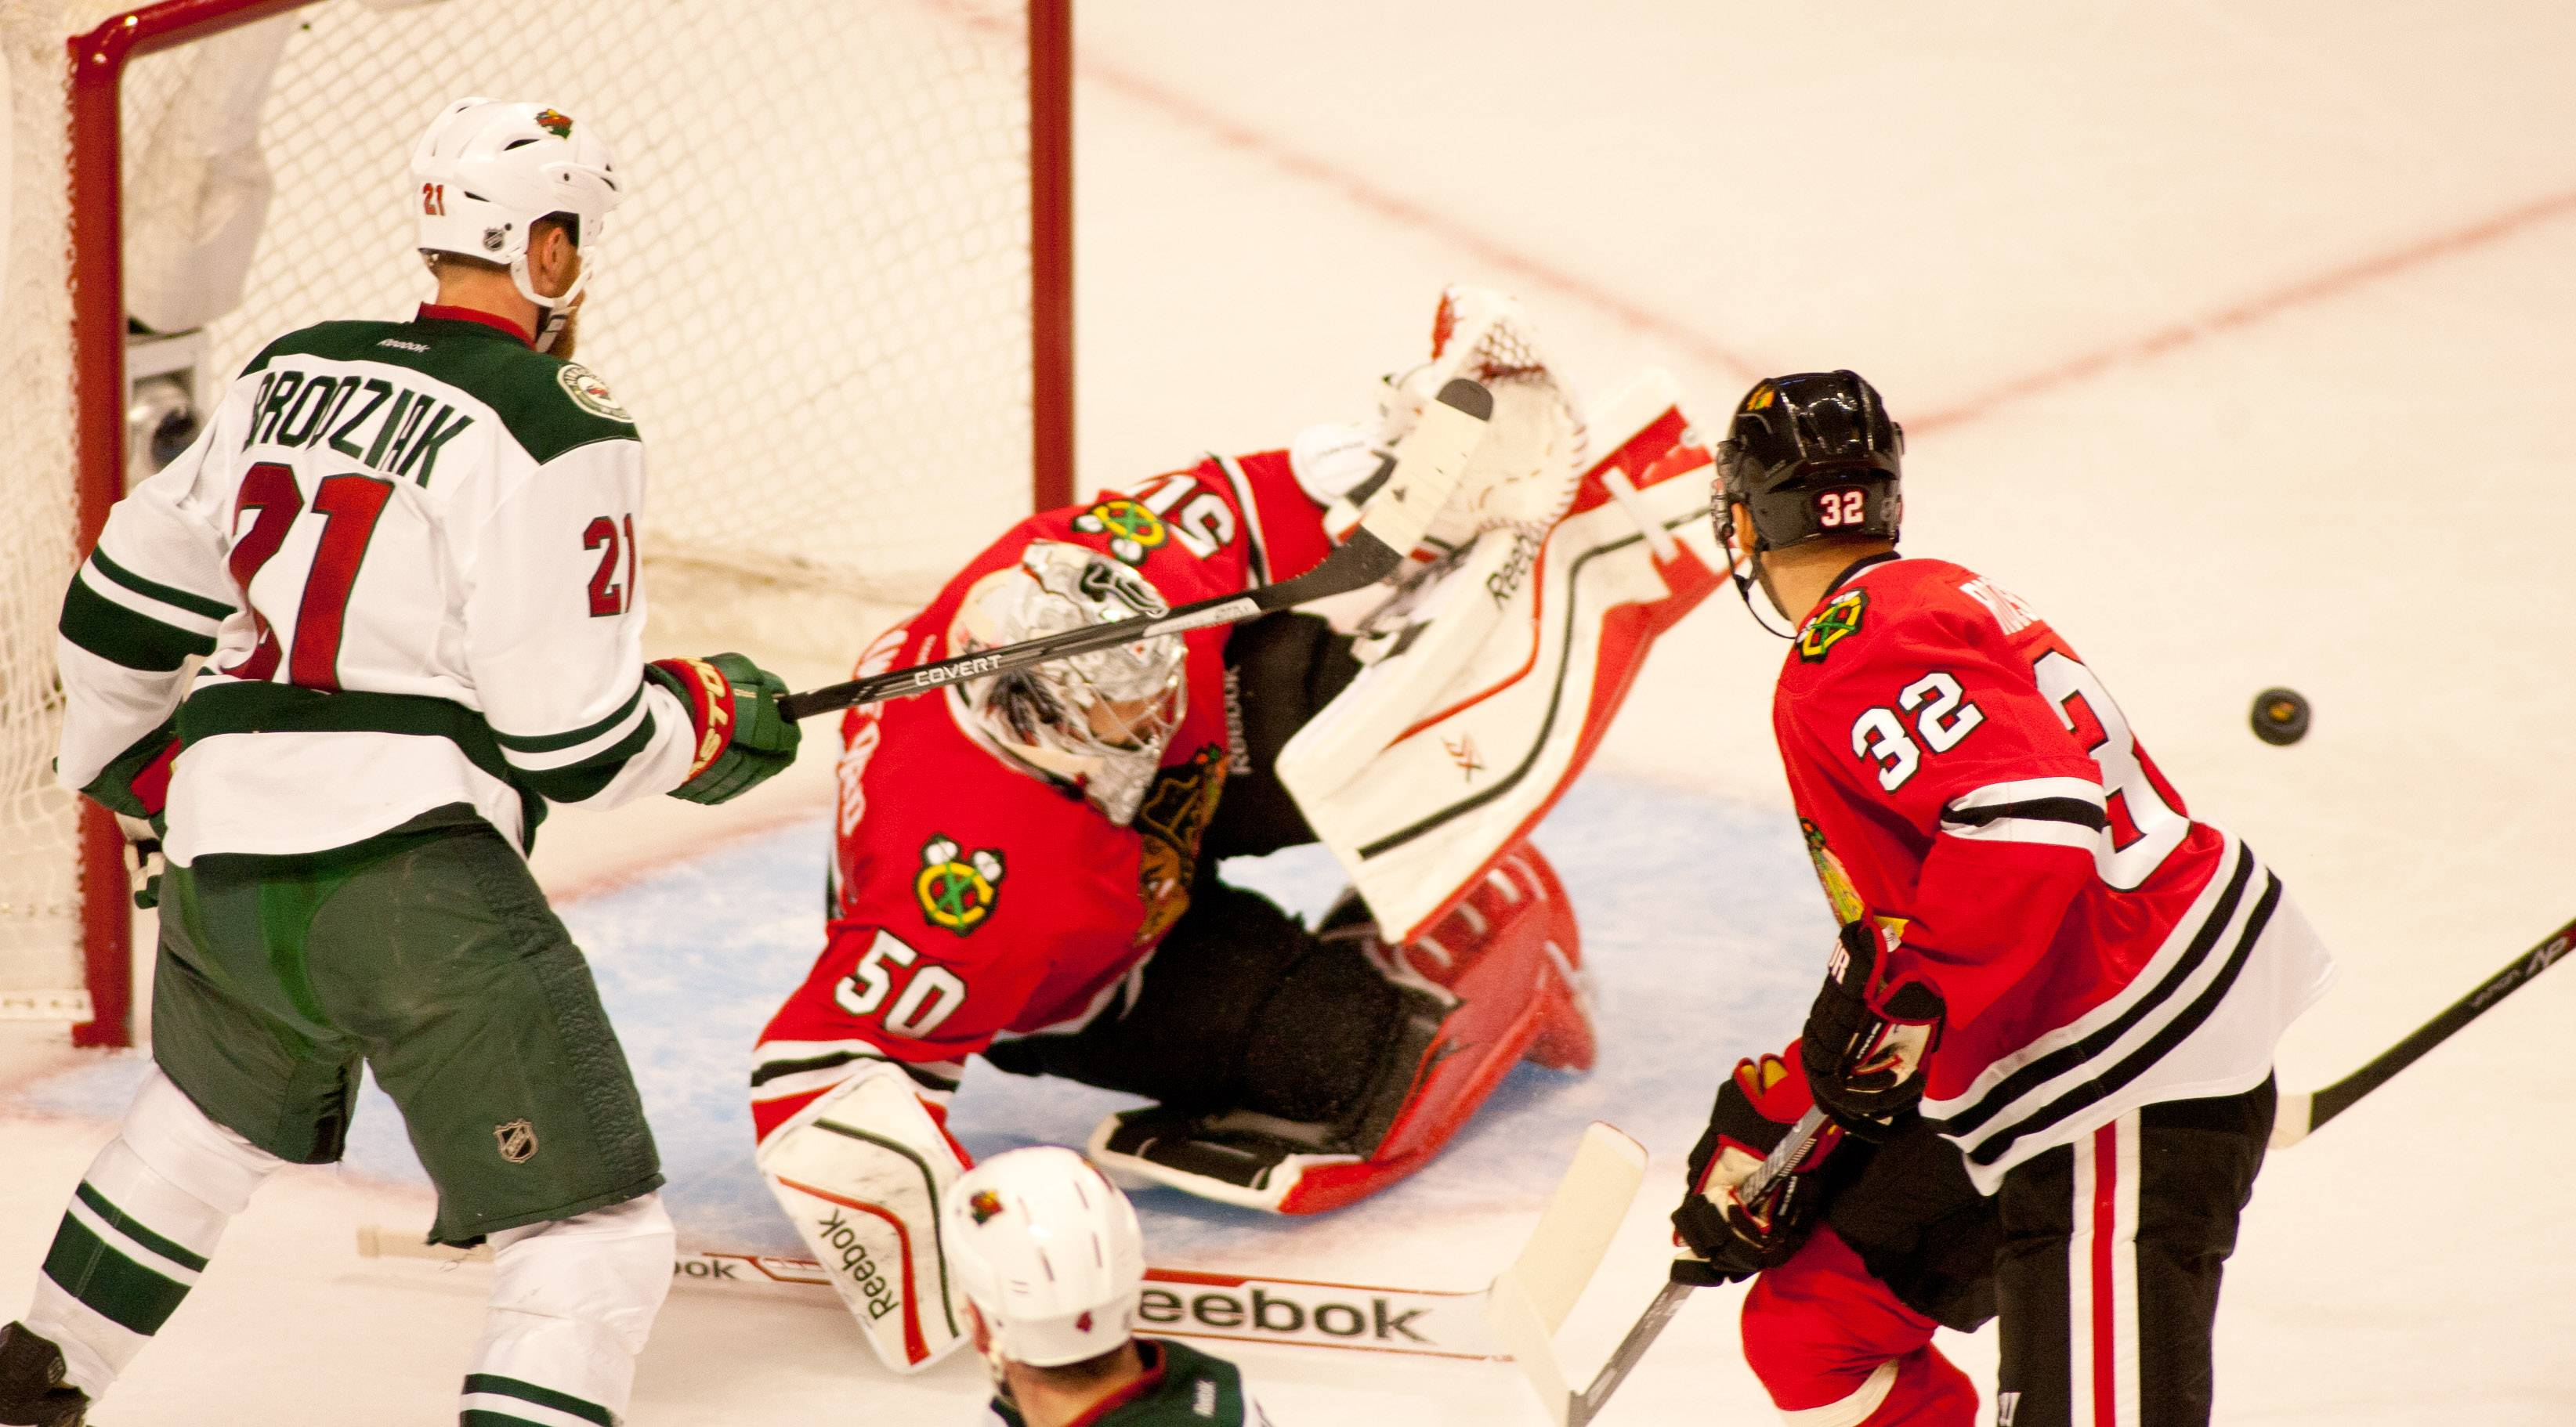 Blackhawks look to bounce back in Game 4